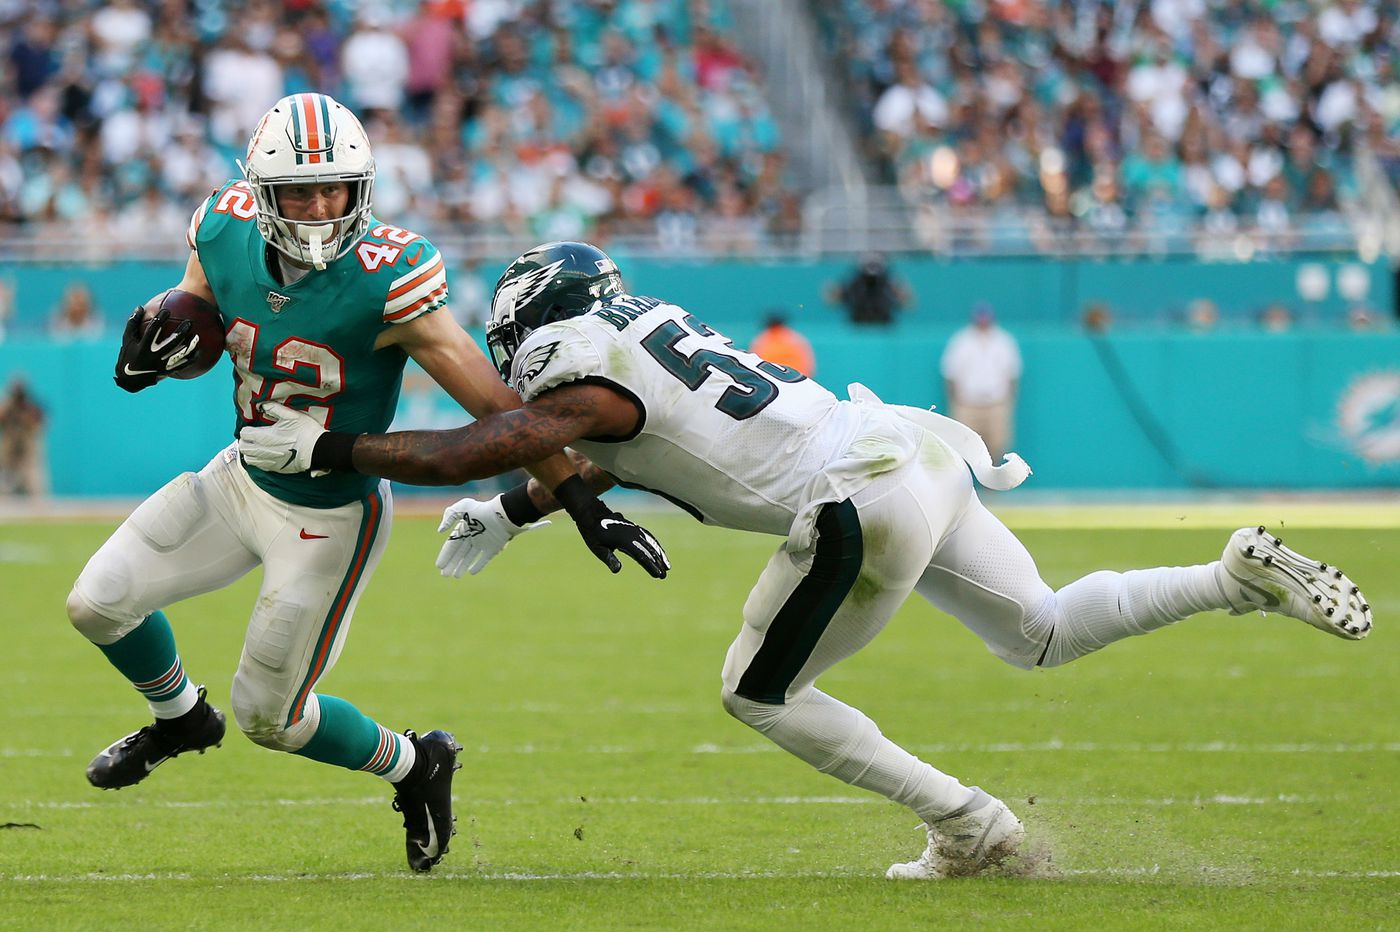 No defense dooms Eagles in loss to Miami Dolphins, and other takeaways | Bob Ford